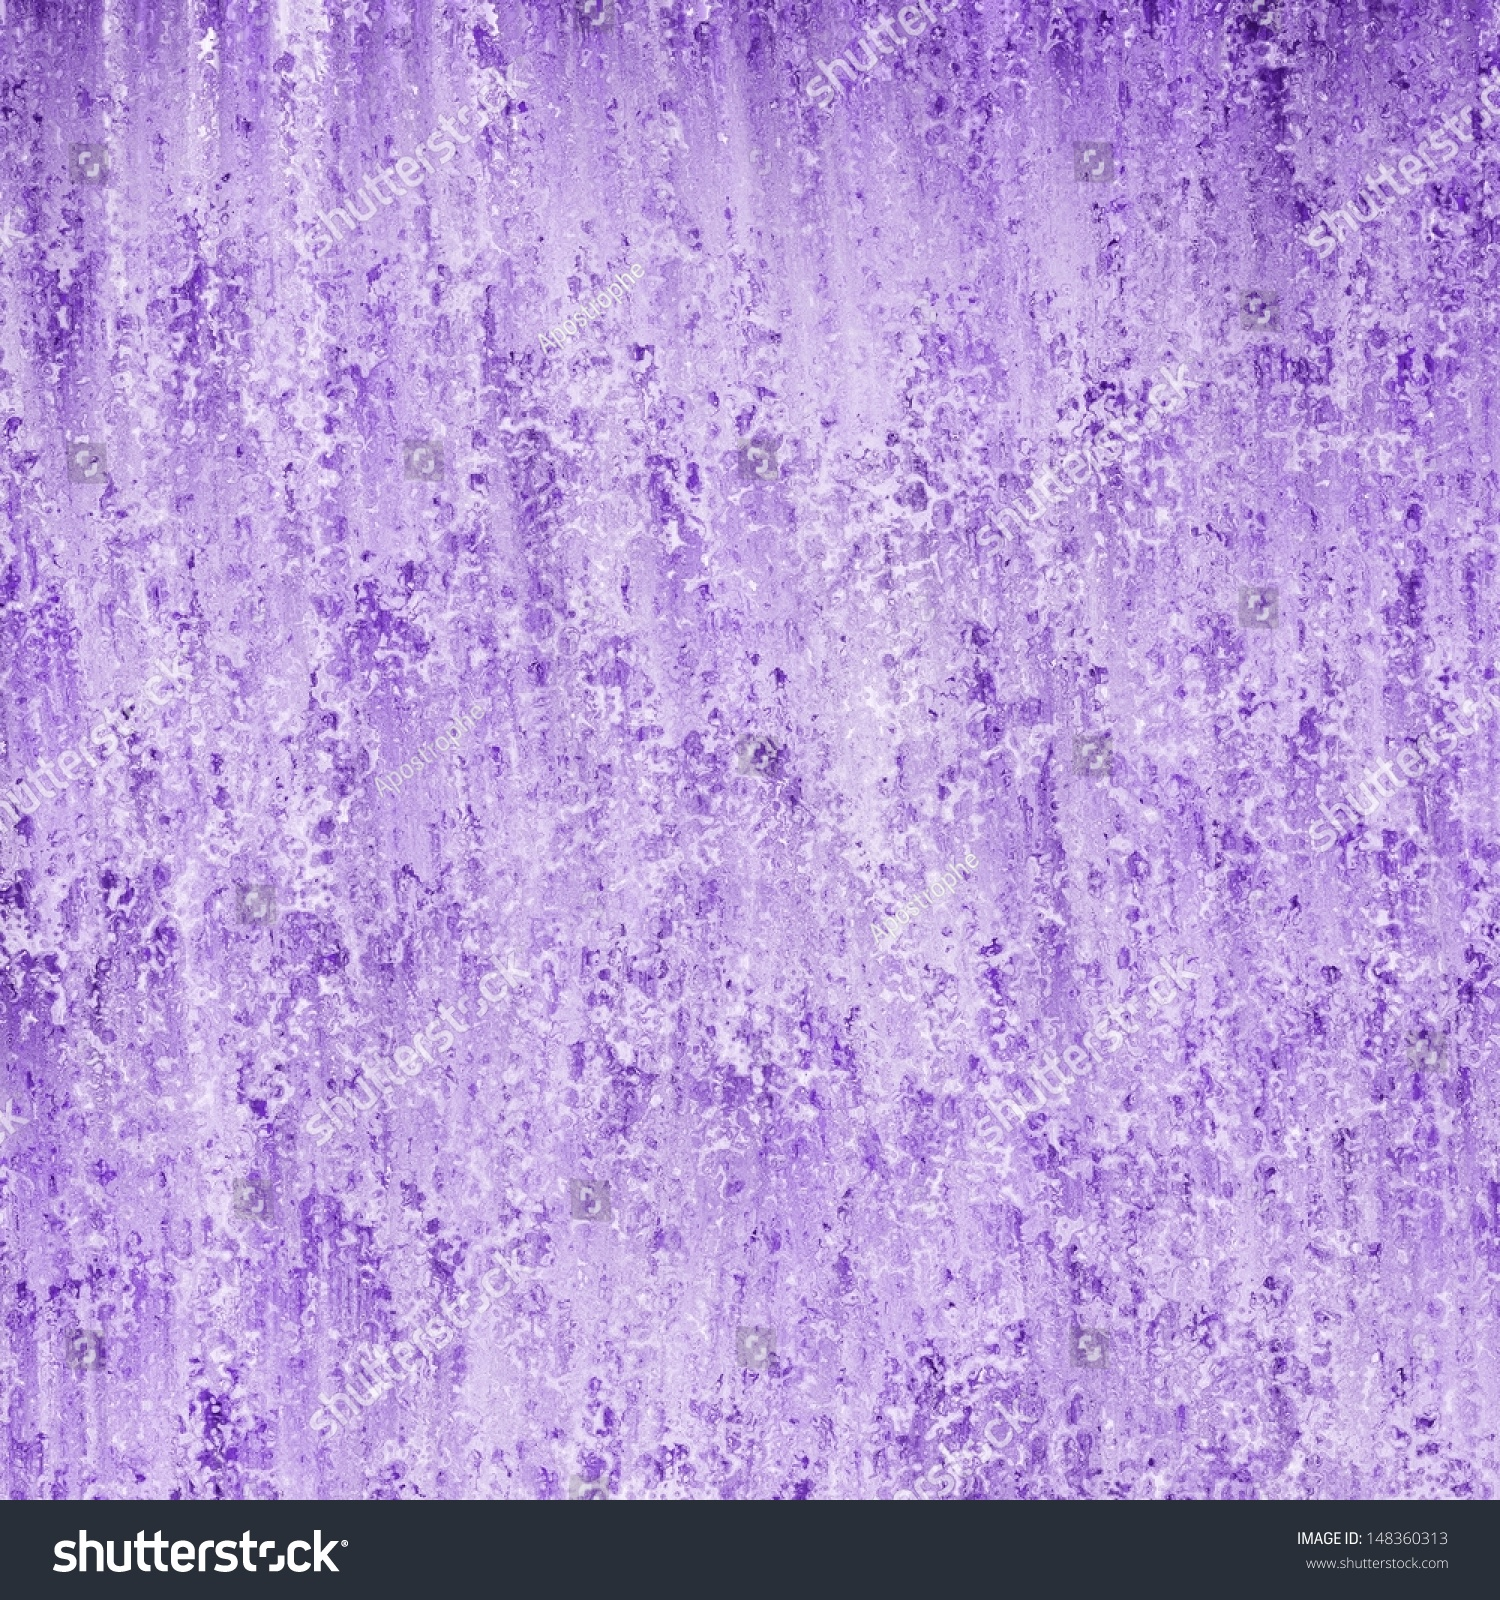 Rough Texture Background: Abstract Purple Background Texture Rough Distressed Stock